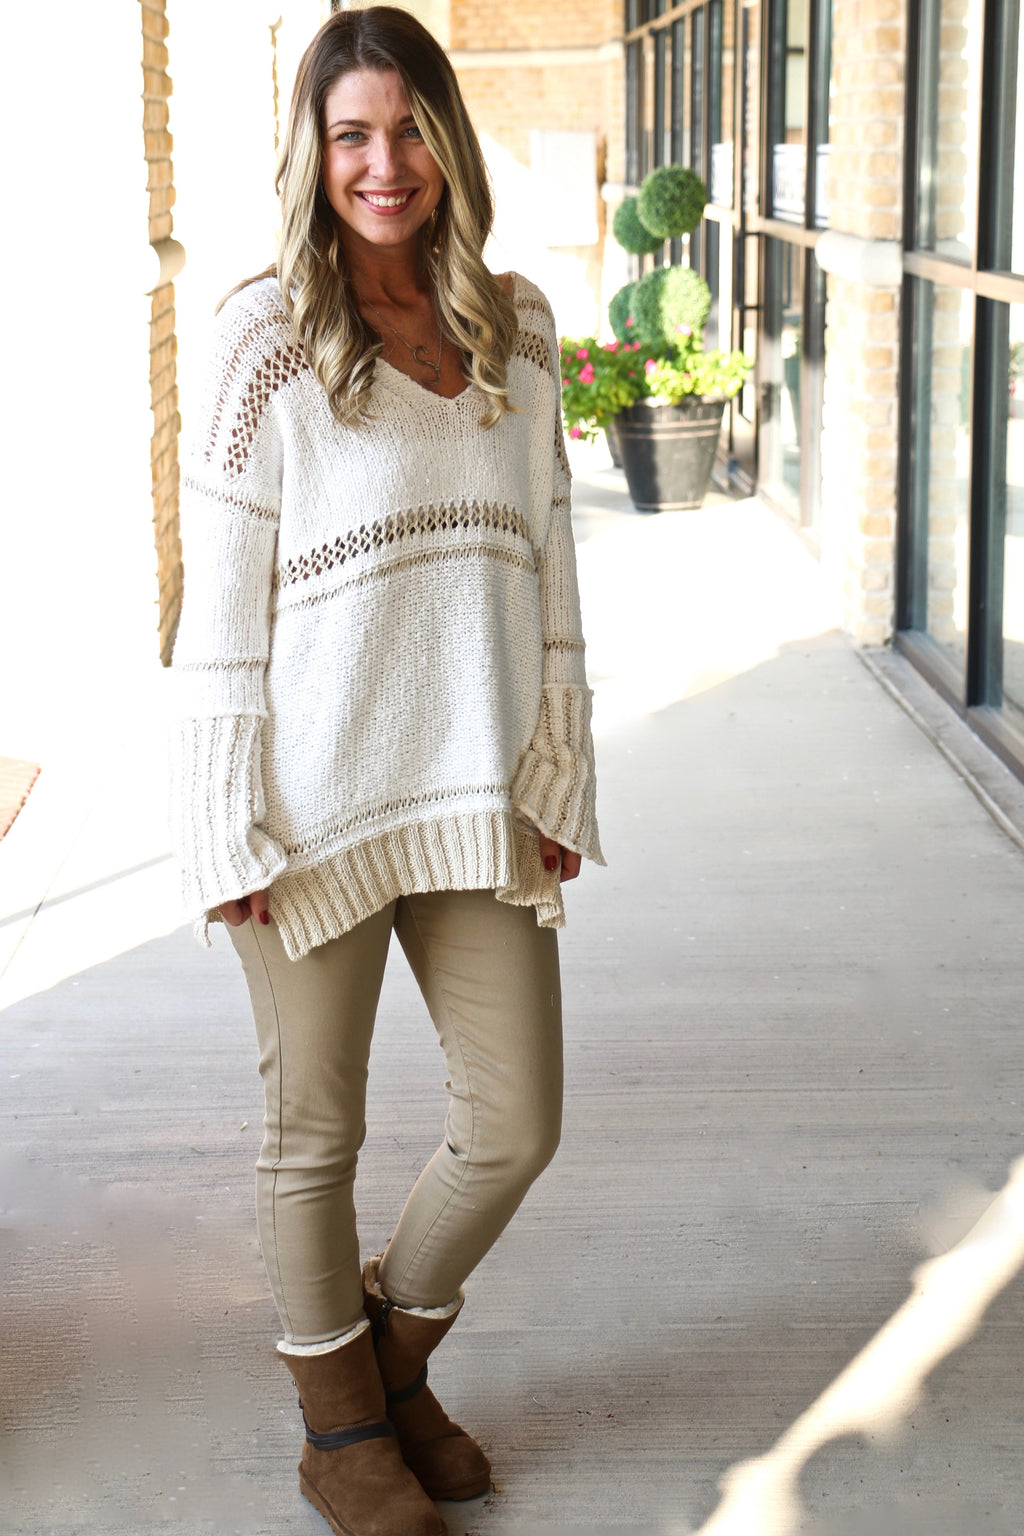 Elan White and Cream Sweater